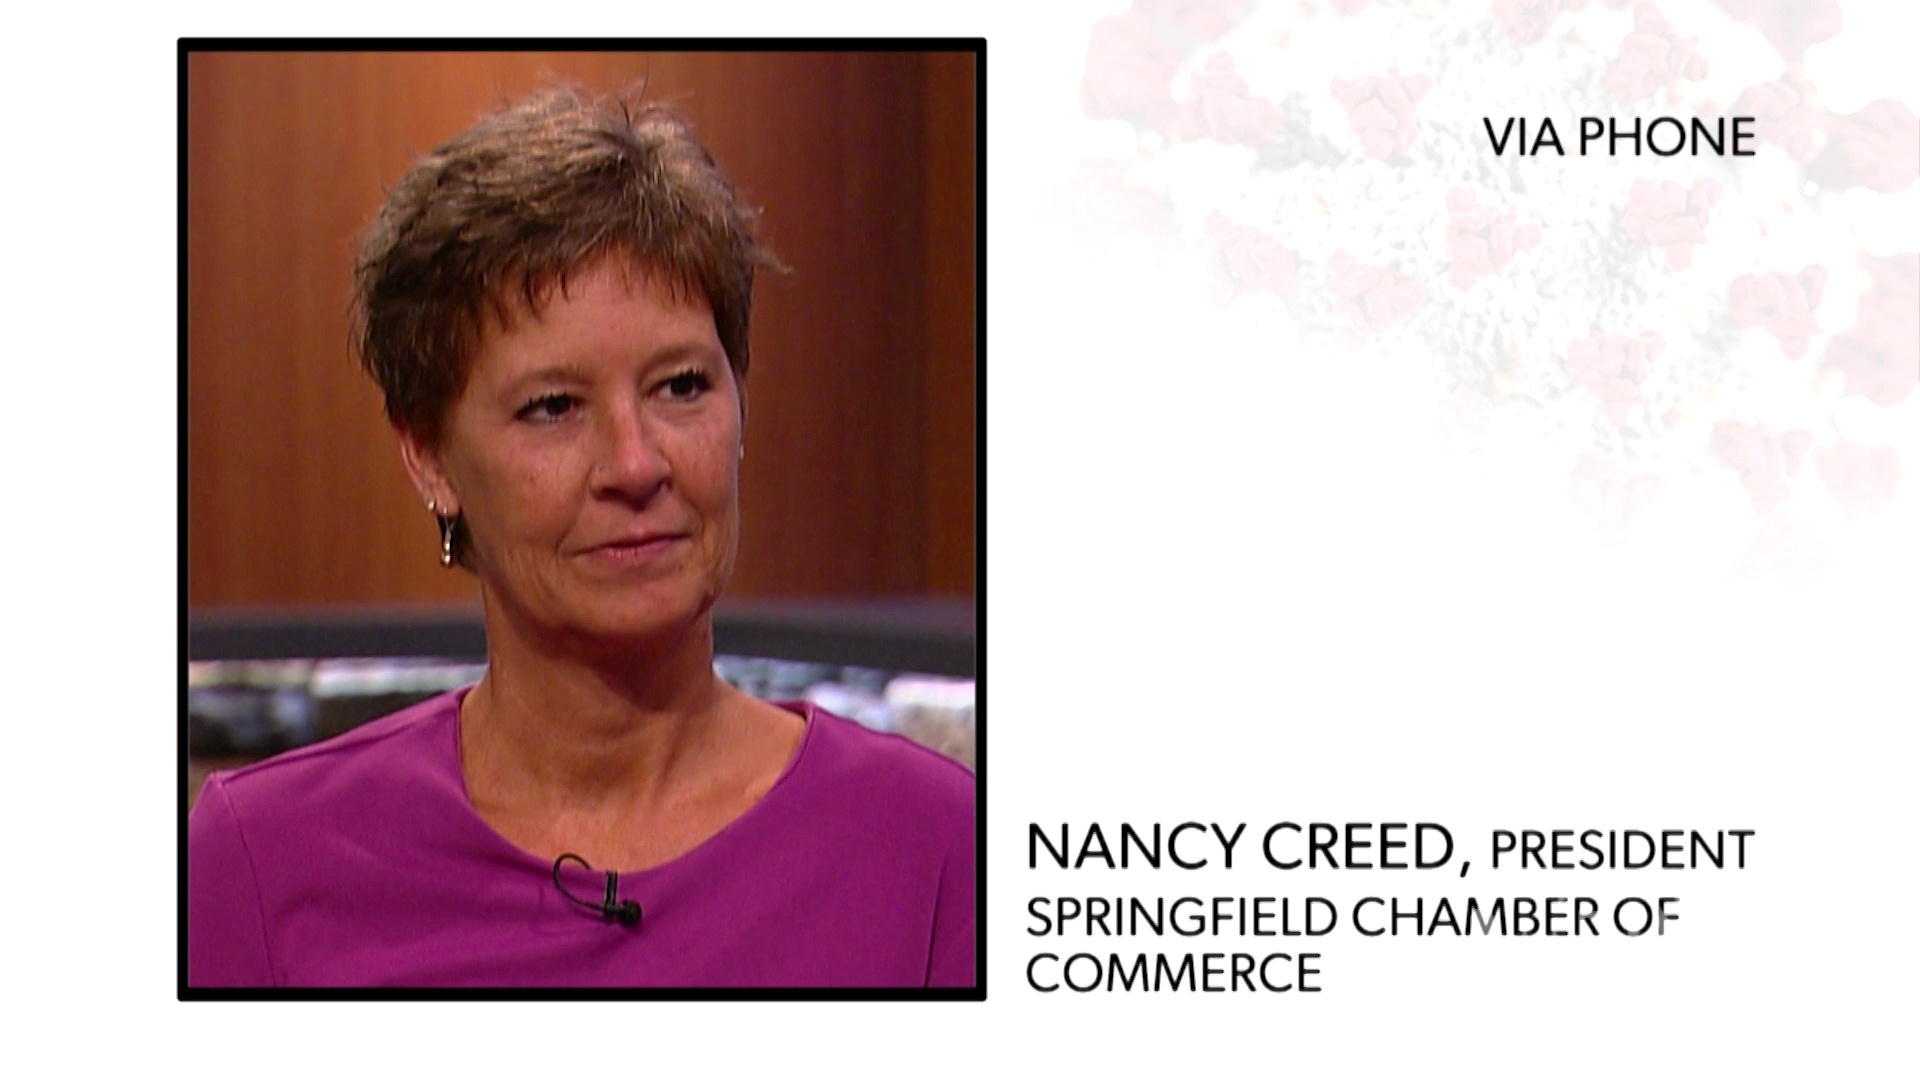 WATCH: Springfield Regional Chamber President Nancy Creed reacts to a survey about the impact COVID-19 may have on local businesses.